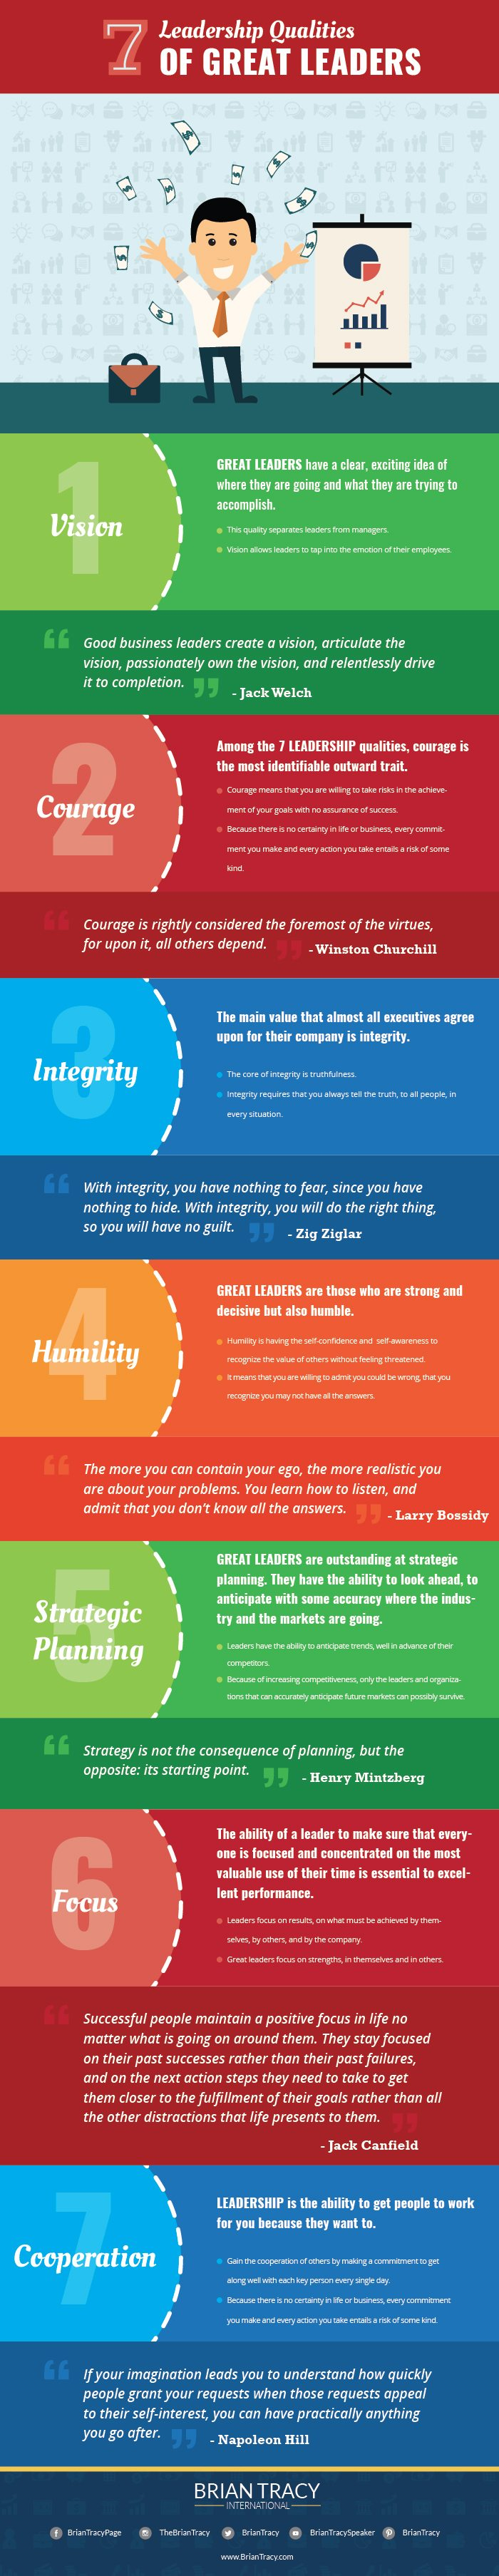 the 7 best leadership qualities infographic brian tracy leadership qualities infographic brian tracy